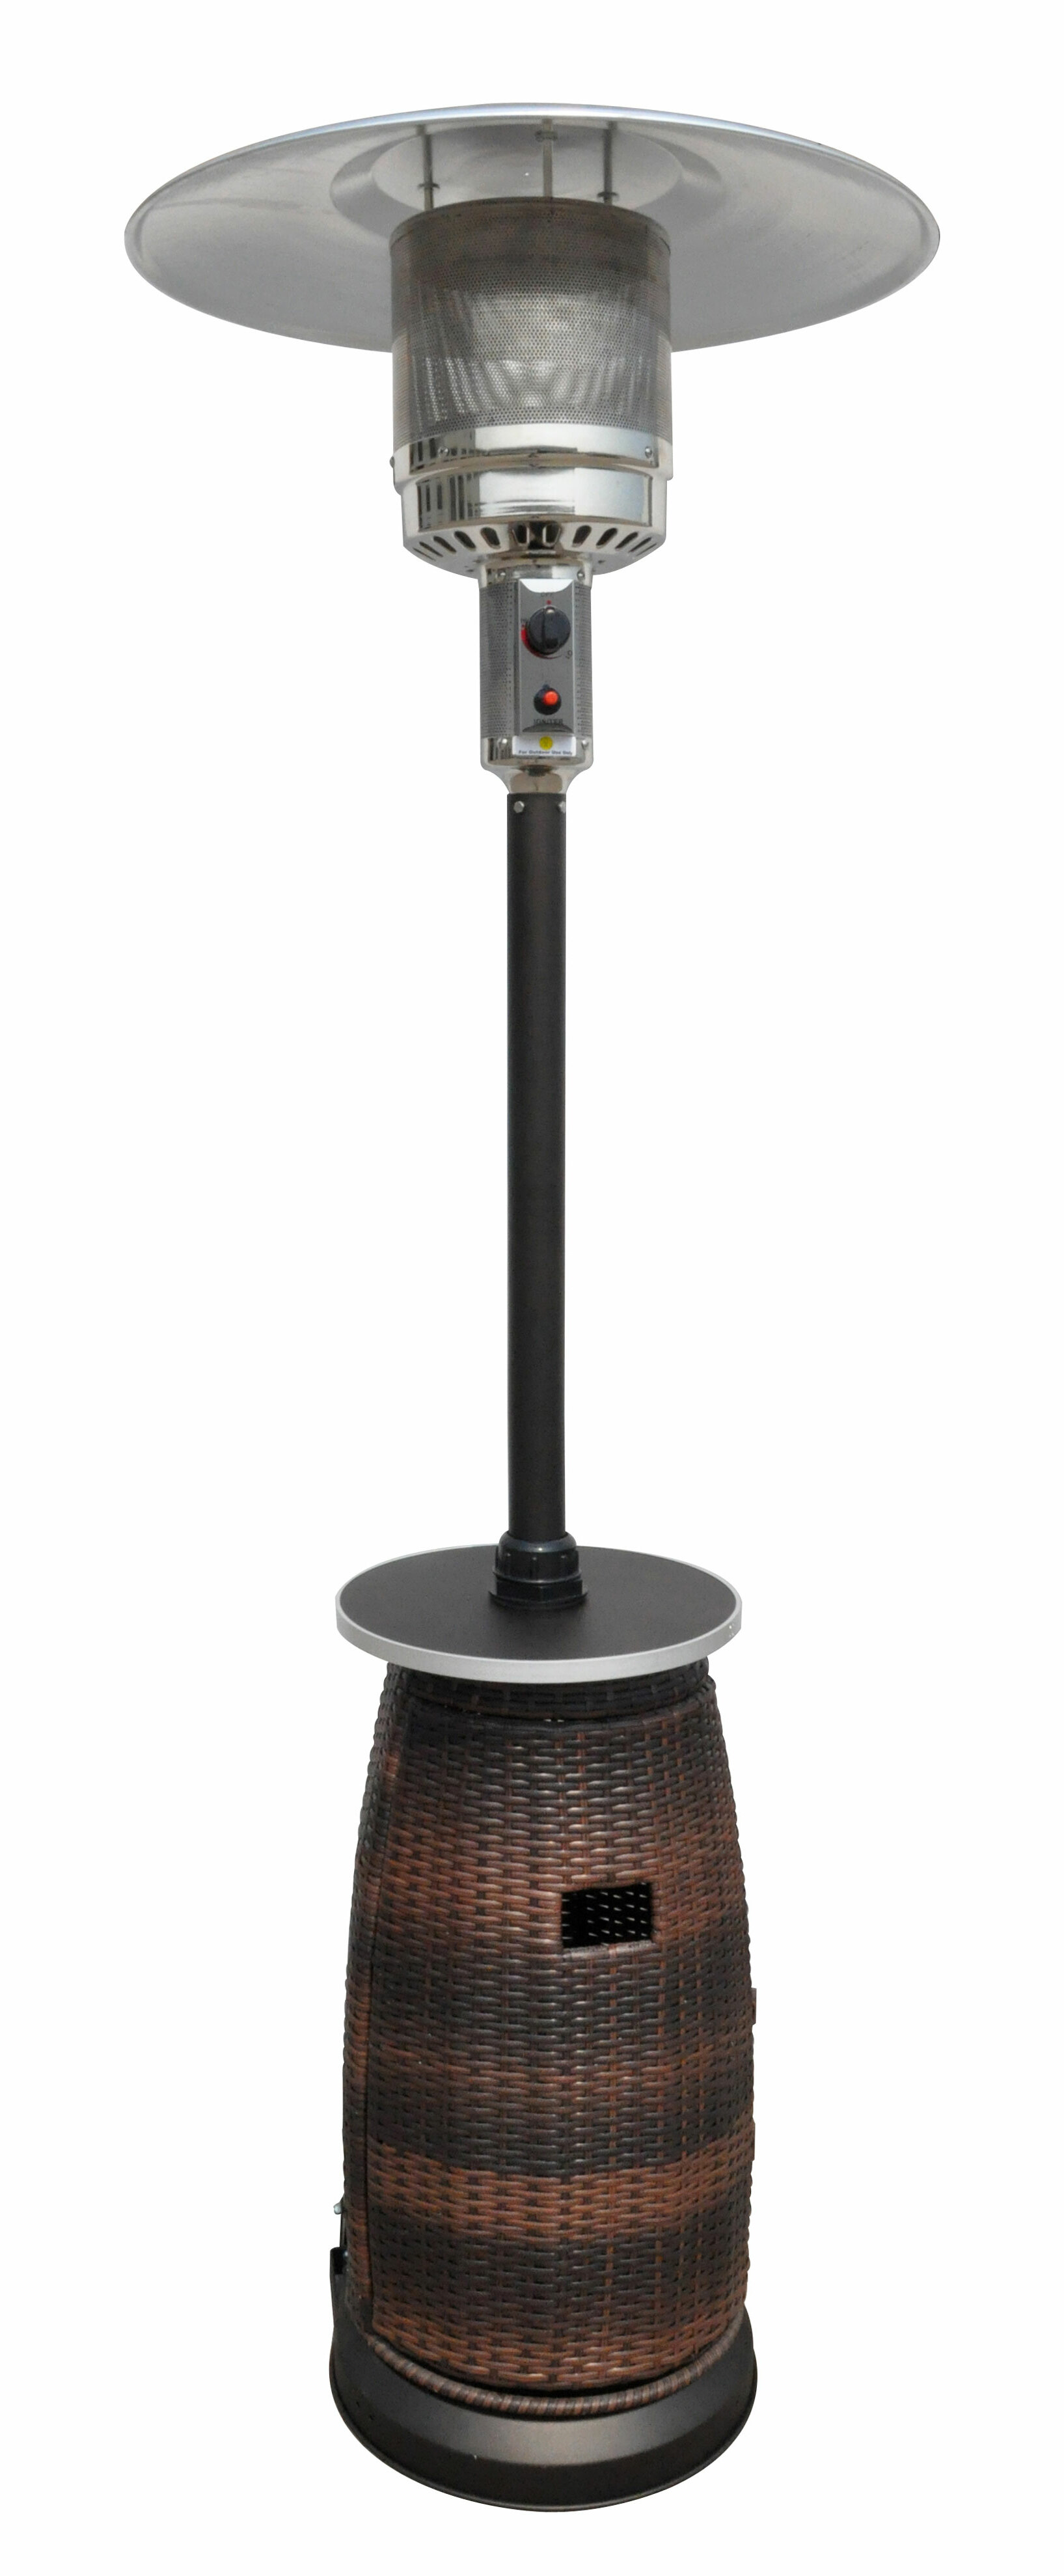 AZ Patio Heaters Tall 41 000 BTU Propane Patio Heater & Reviews